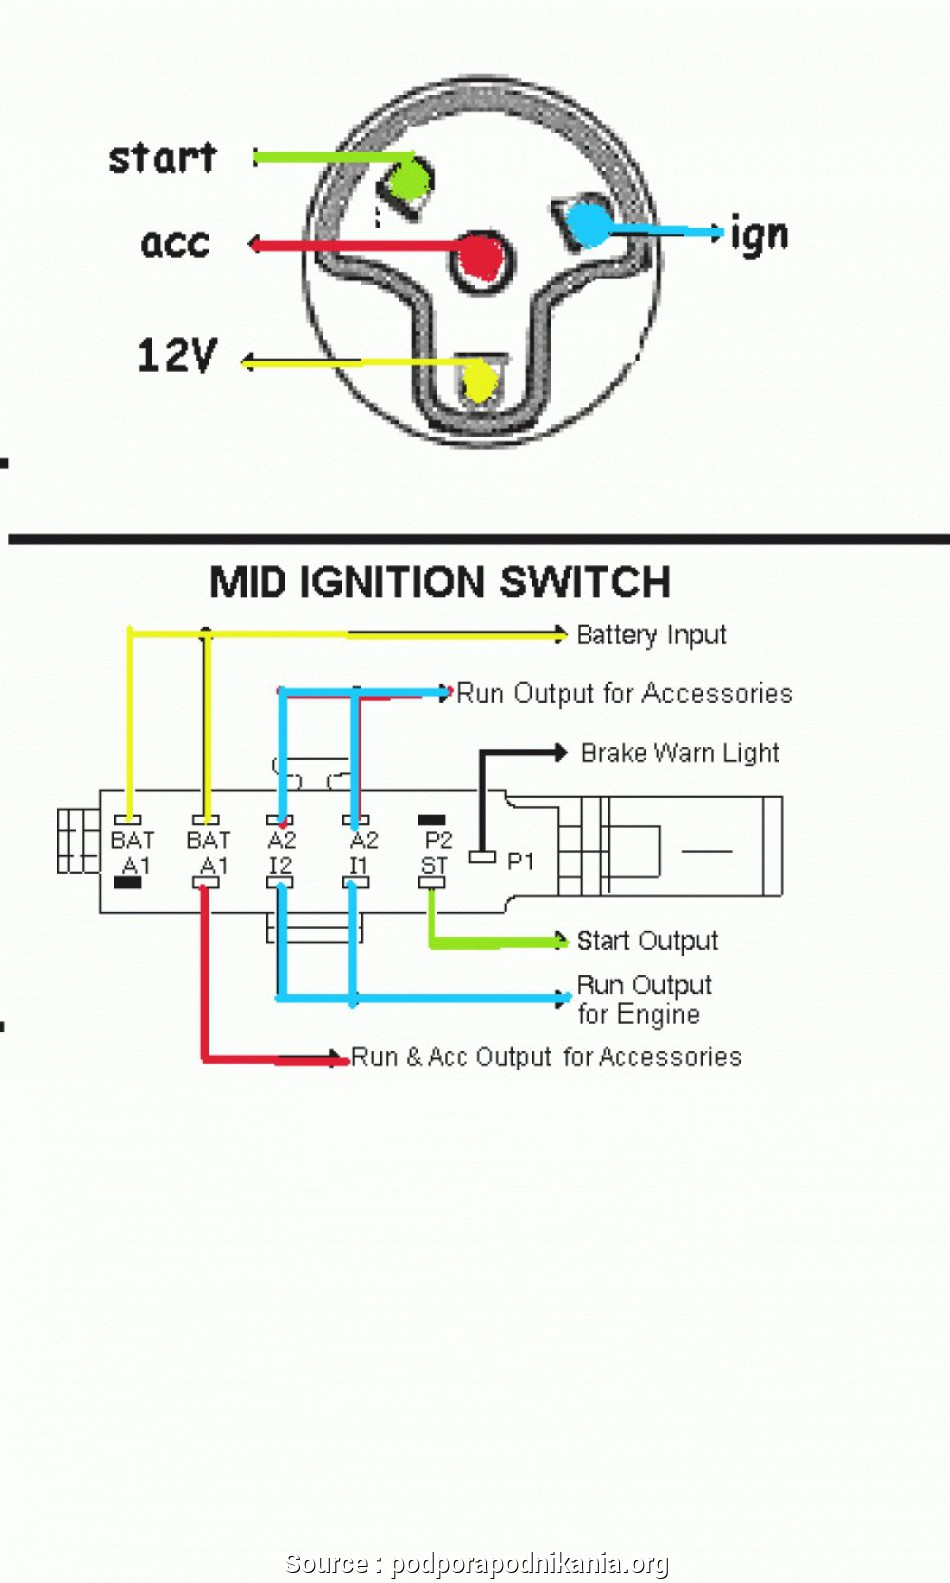 Saab Ignition Switch Wiring Diagram Speed Control Wiring Diagram For Wiring Diagram Schematics